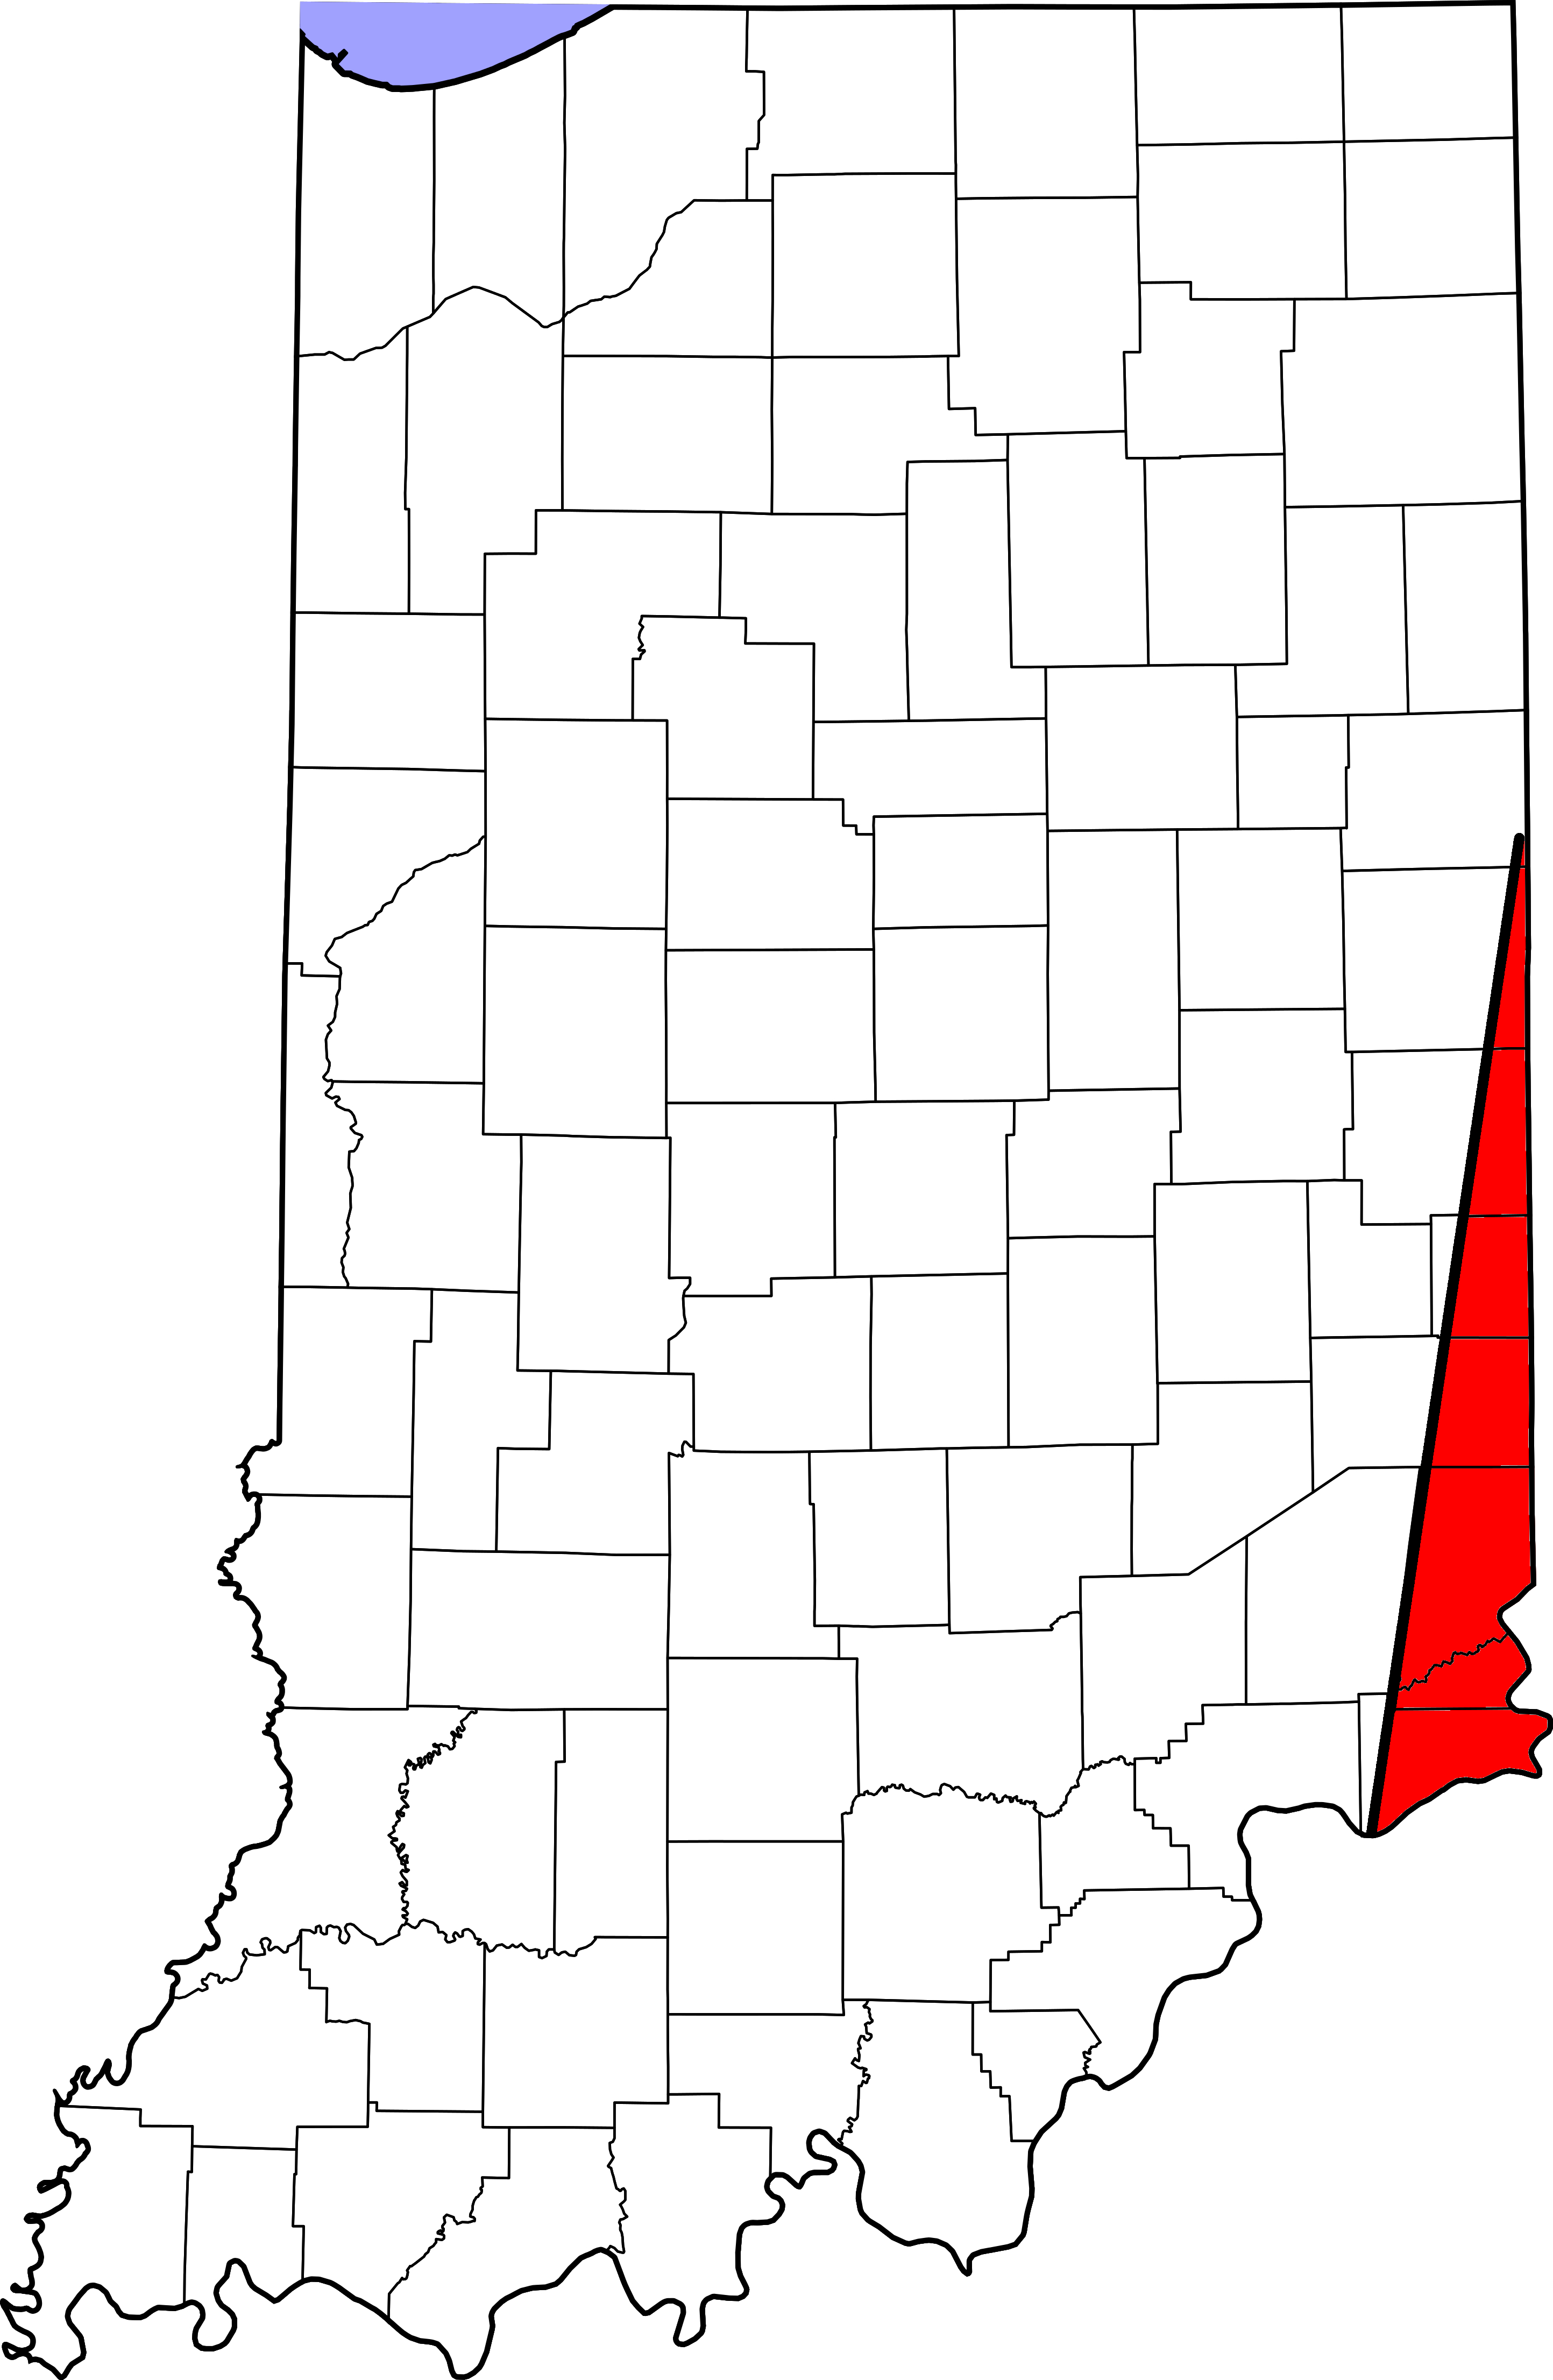 welcome to indiana's gore - map of indiana's gore